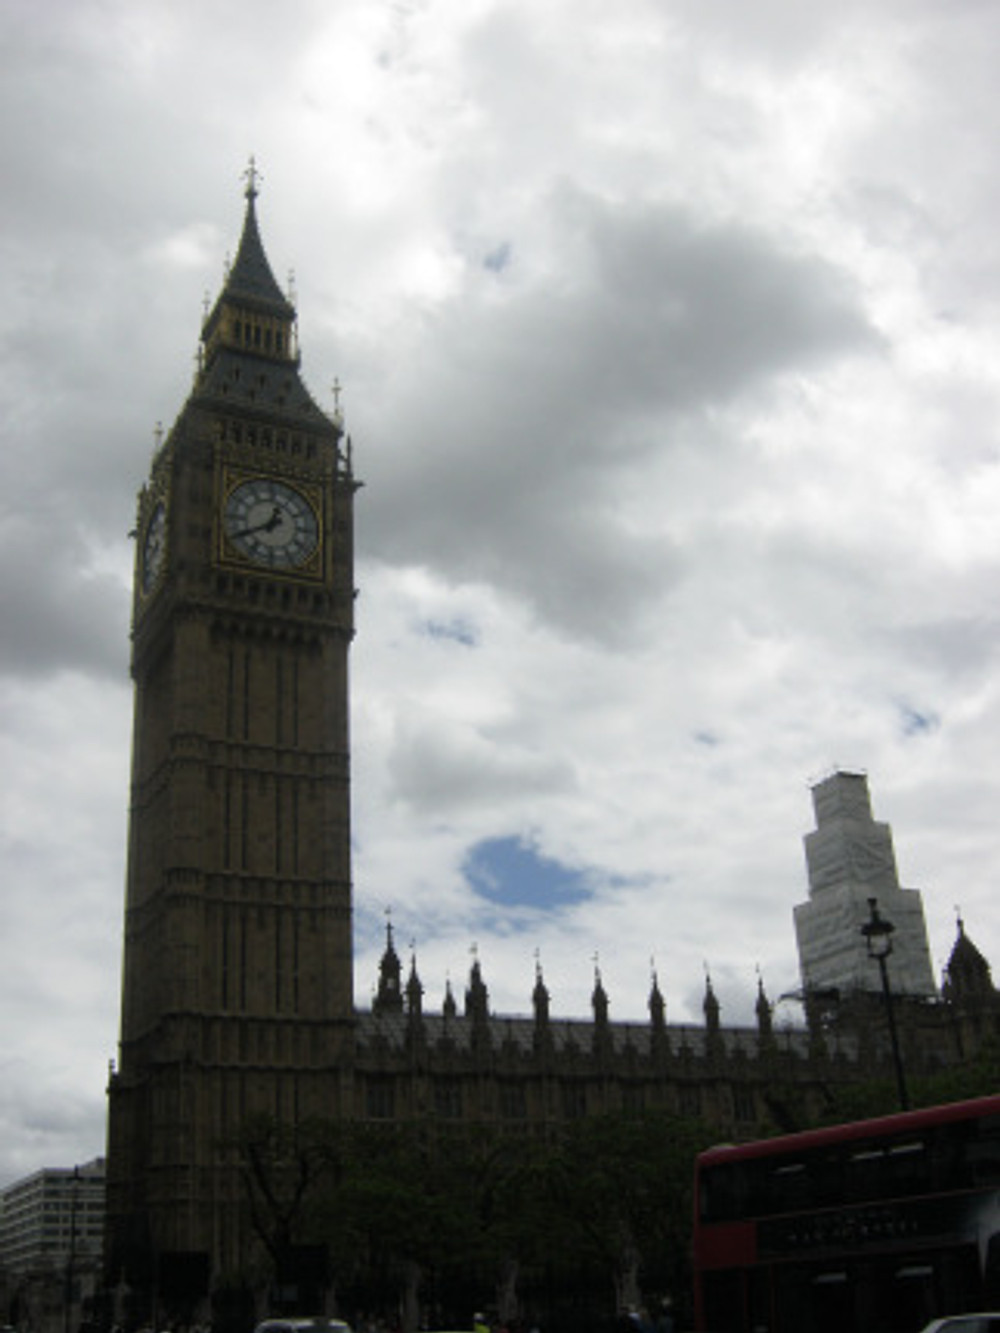 Obligatory photo of Big Ben that has to exist when talking about London and at any cost!